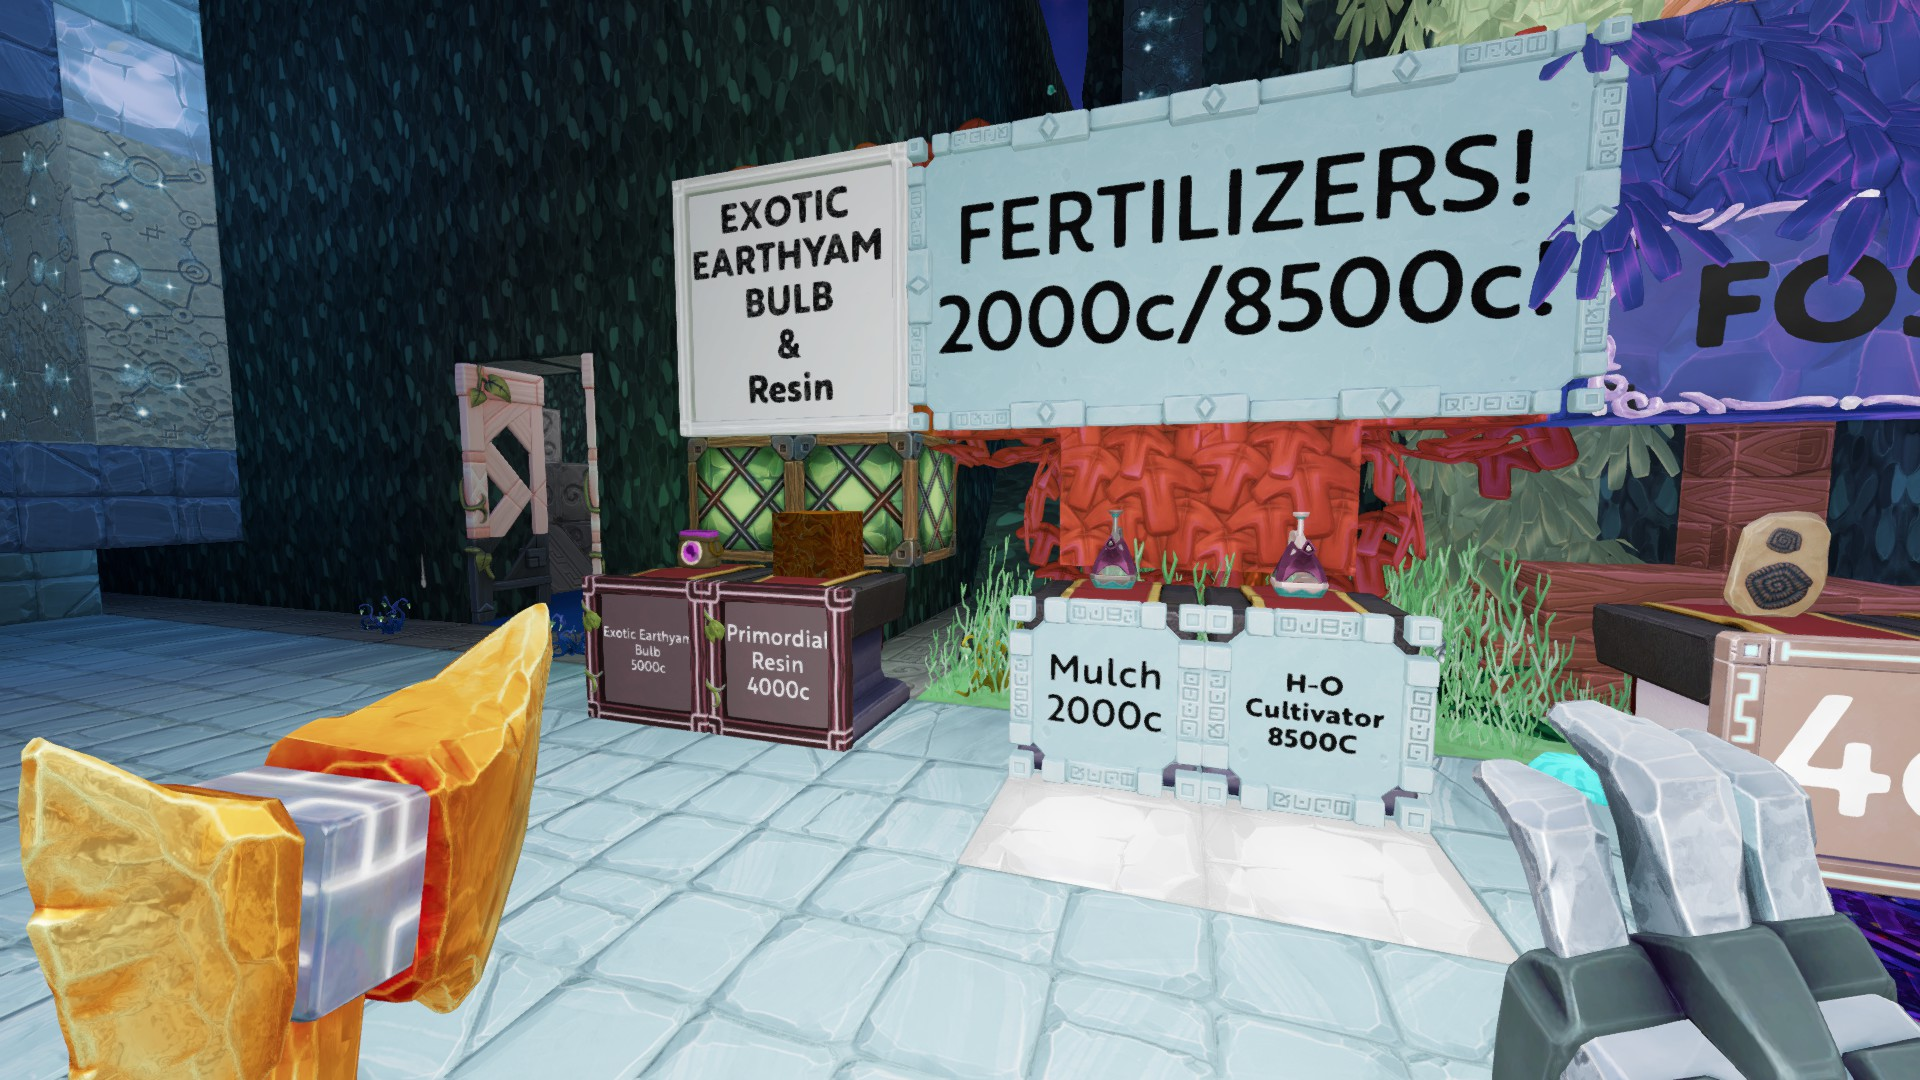 Fertilizers! Now Resin and Exotic Yam Bulbs in stock! - Trading